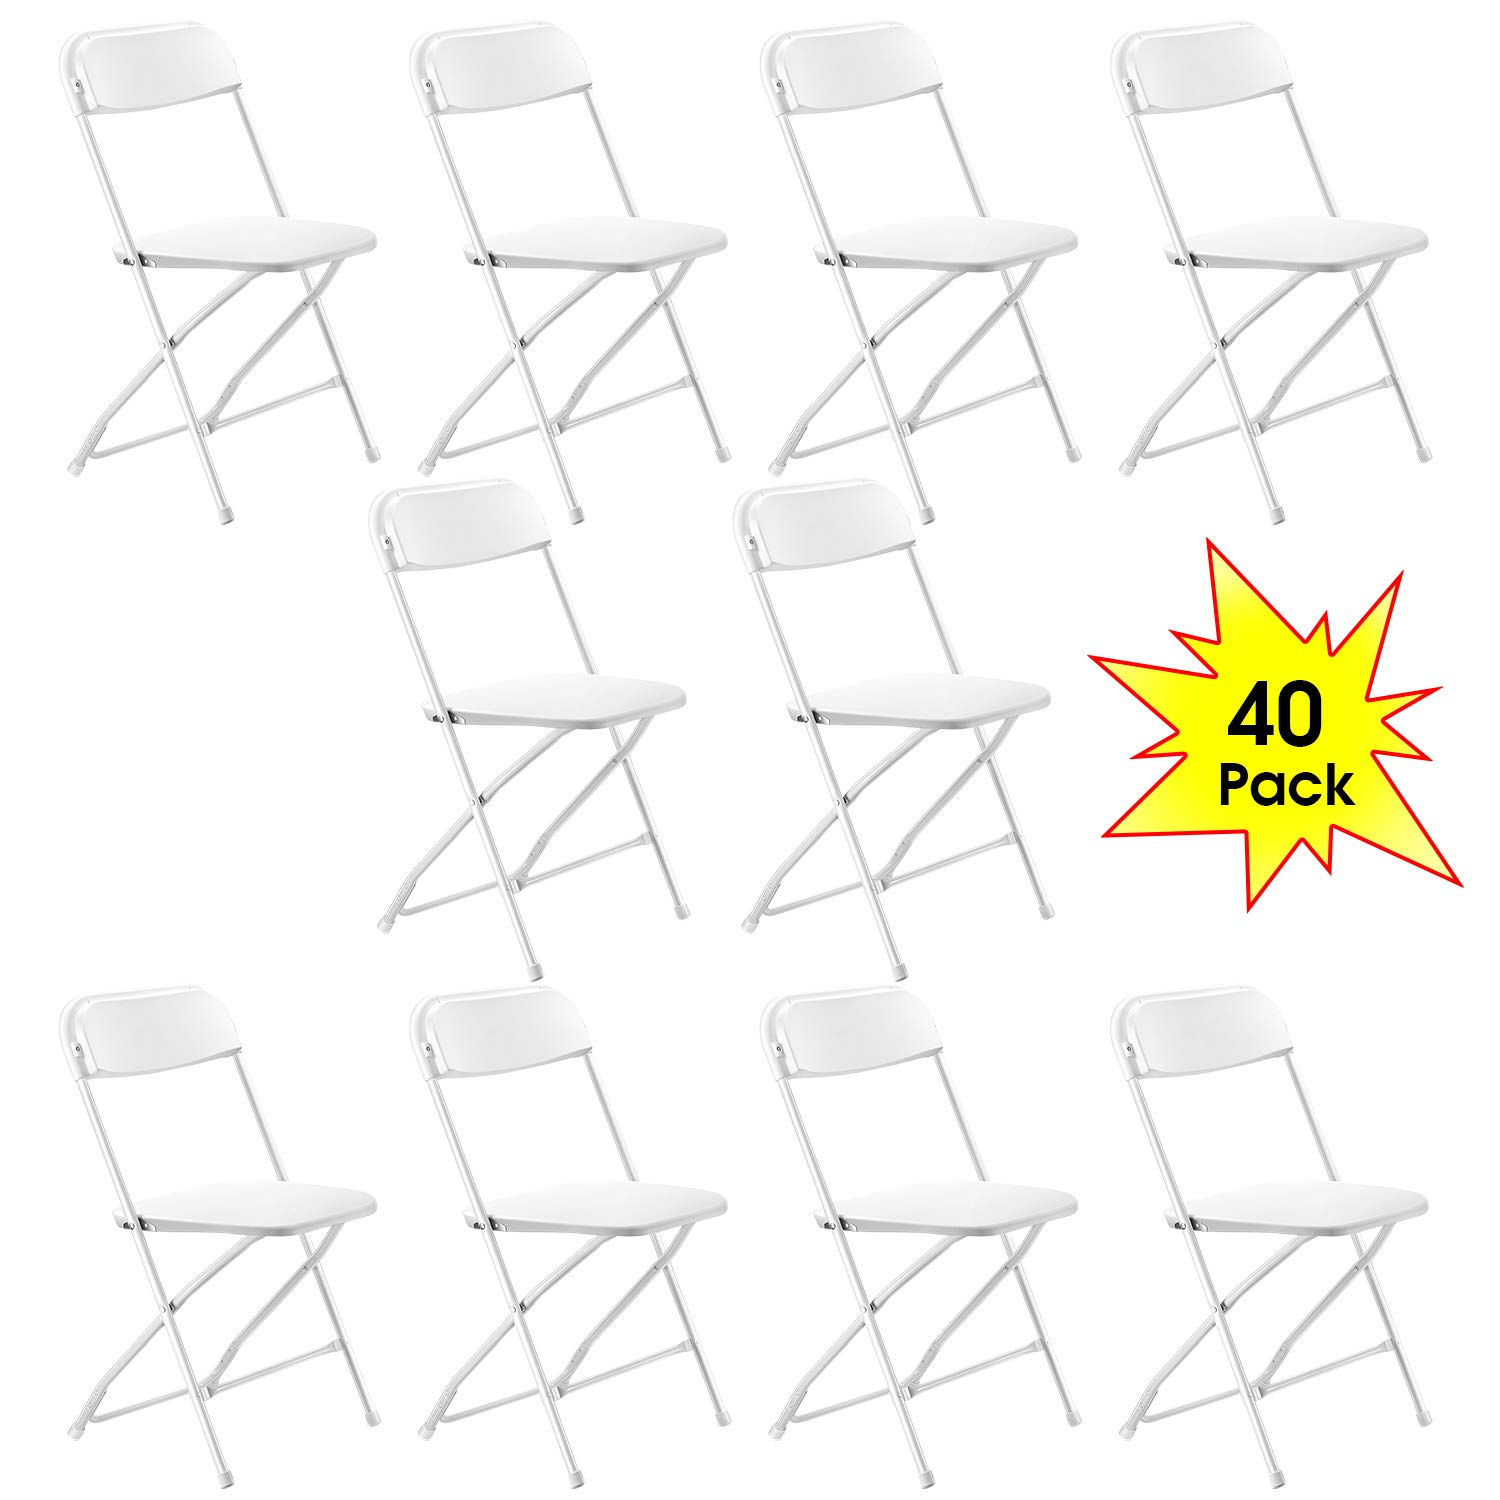 Kealive White Plastic Folding Chair 40 Pack Fold Chair 330 lbs Weight Capacity for Events, Parties, Premium Lifetime Fold Up Chair Portable by kealive